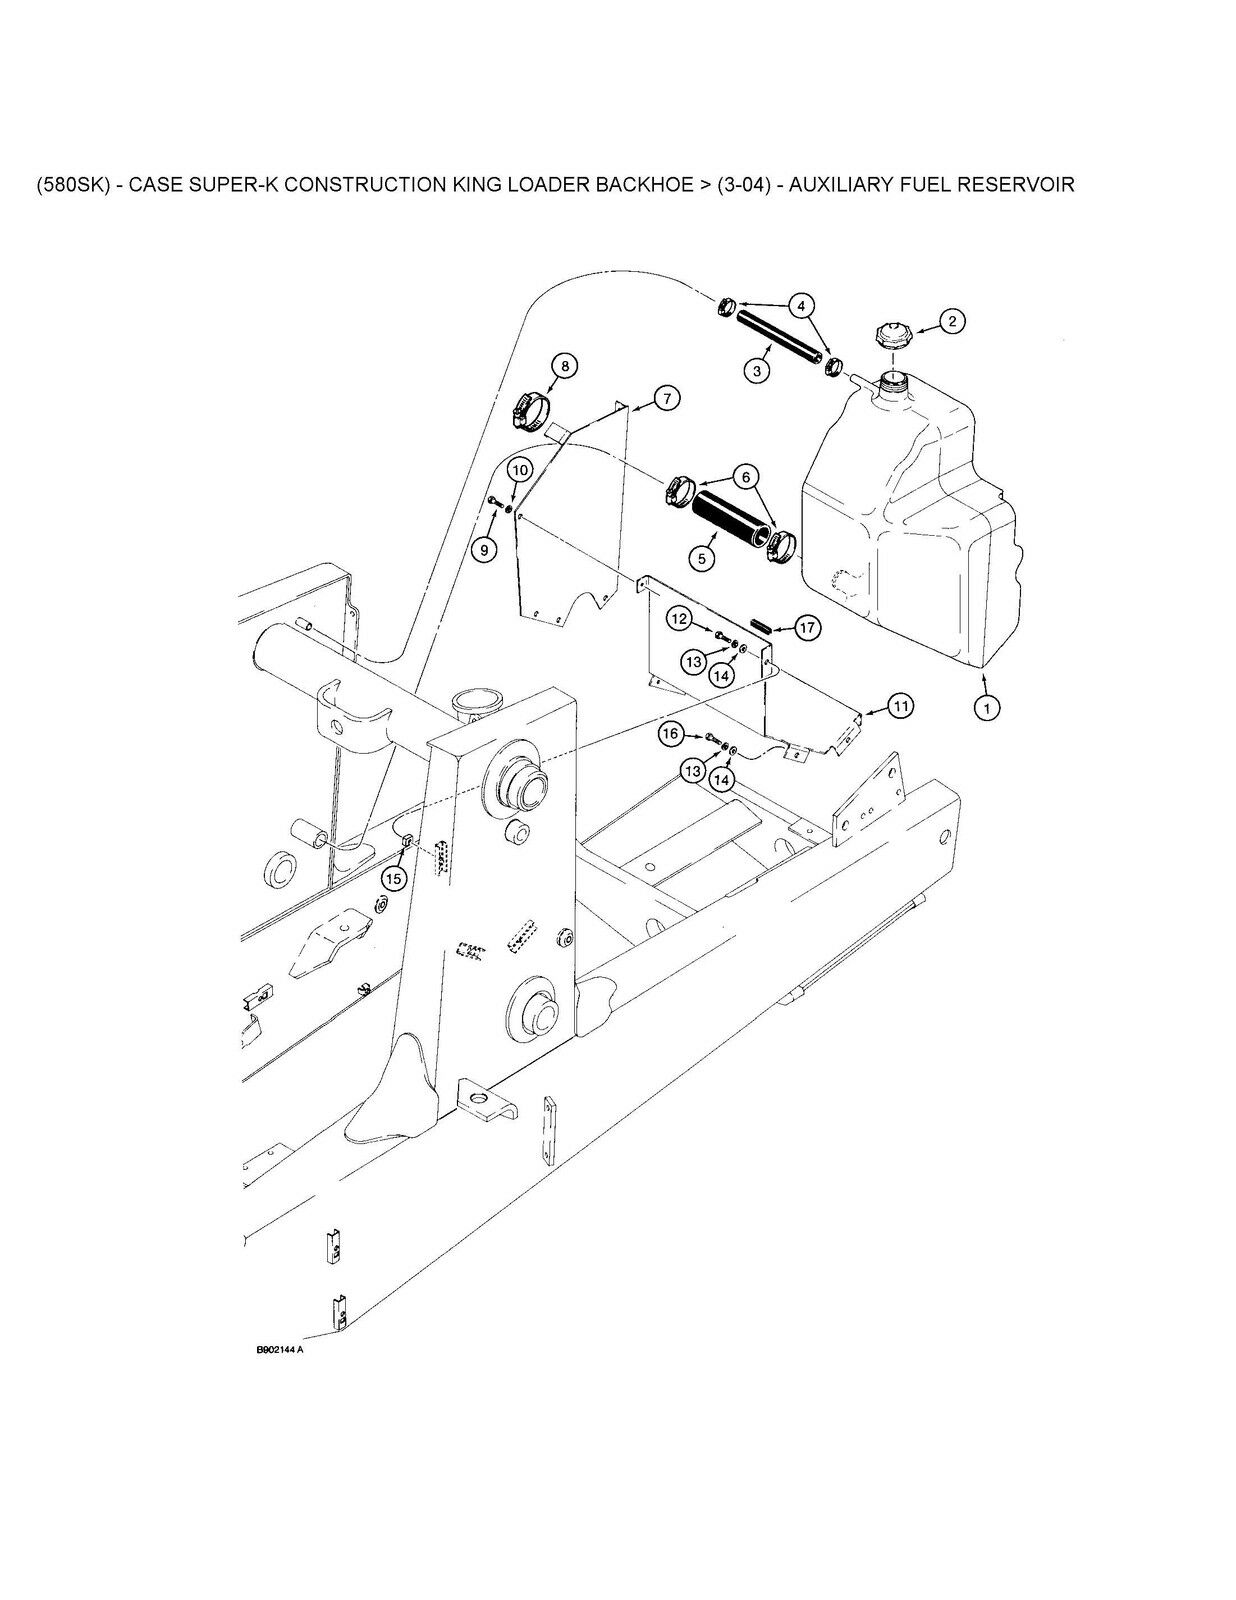 ... wiring schematic for case 580 sk backhoe basic guide wiring diagram  \u2022 Case 580C Parts